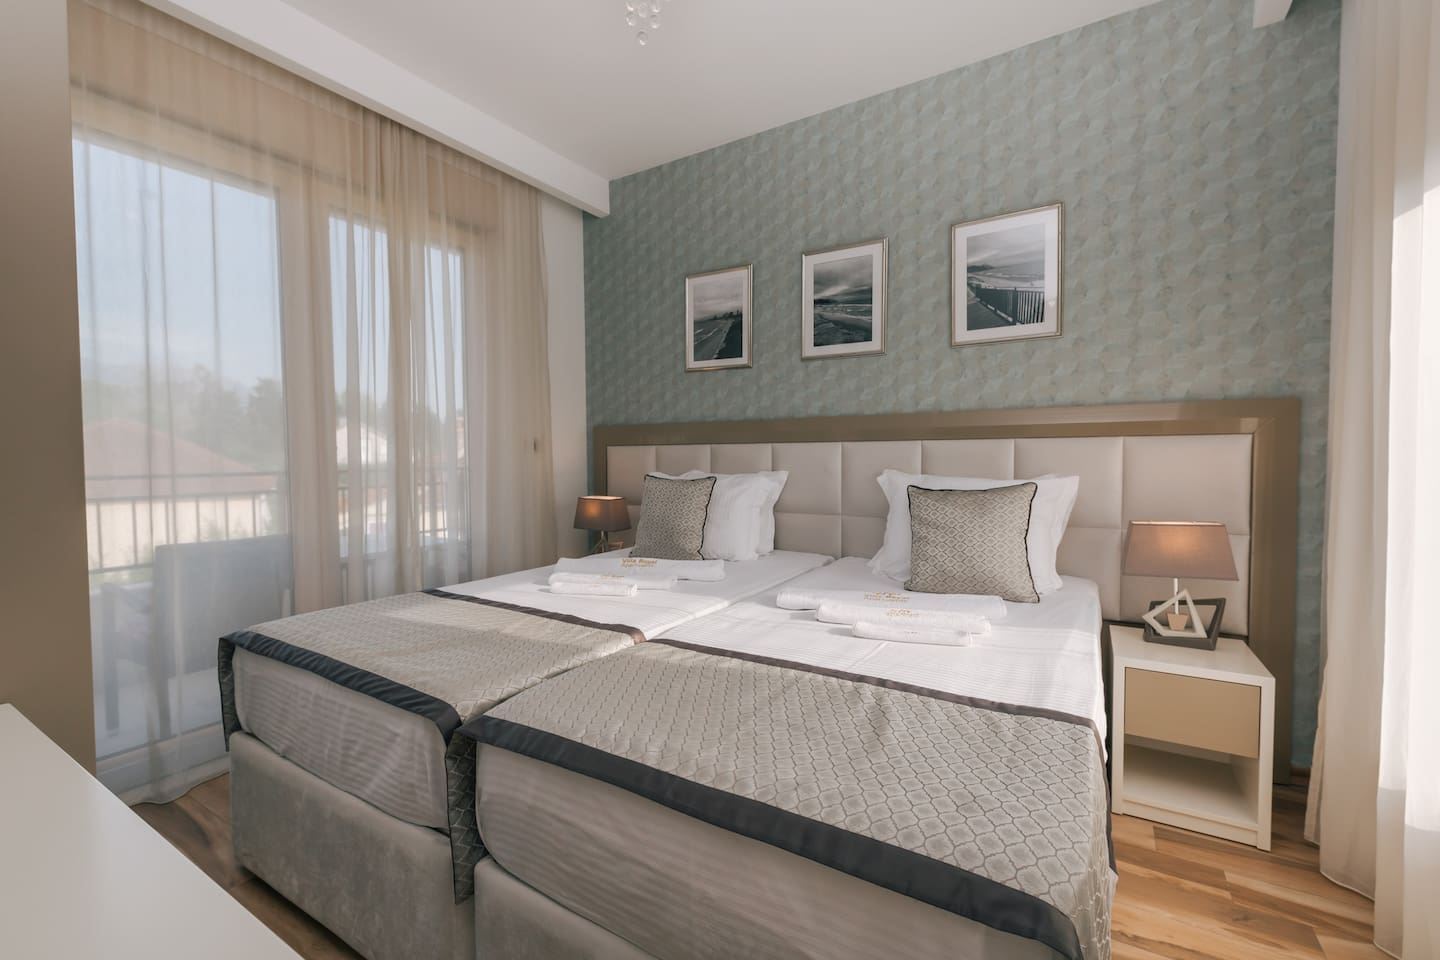 Bedroom with extralarge King bed 200x200cm or two single beds 100x100cm